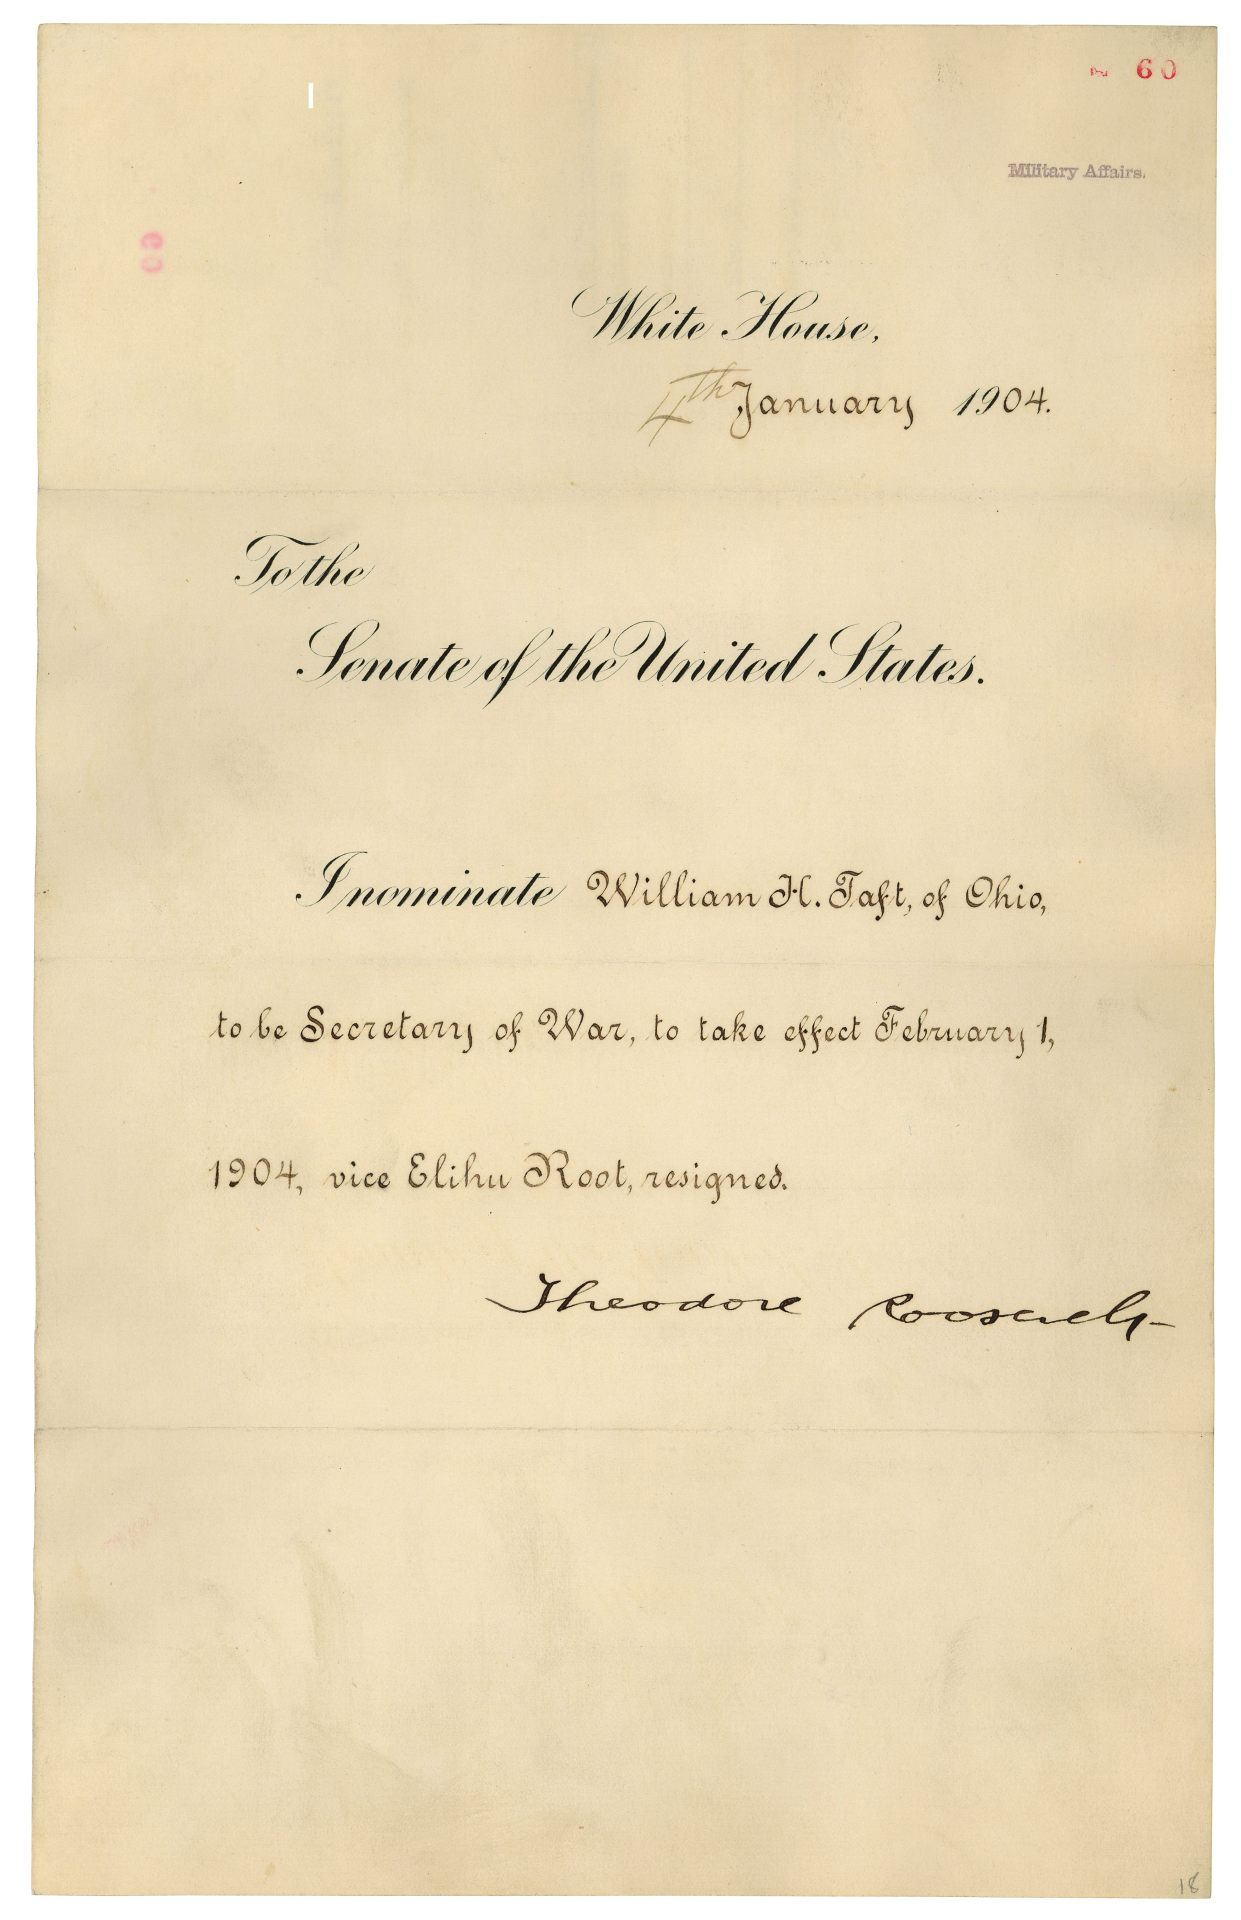 On January 4, 1904, President Theodore Roosevelt nominated William Howard Taft to be Secretary of War. Taft served as Secretary of War from 1904 until he was elected President in 1908. Taft later served as Chief Justice of the U.S. Supreme Court from 1921 to 1930. Nomination of William H. Taft of Ohio to be Secretary of War, 1/4/1904, Records of the U.S. Senate (ARC 306340)